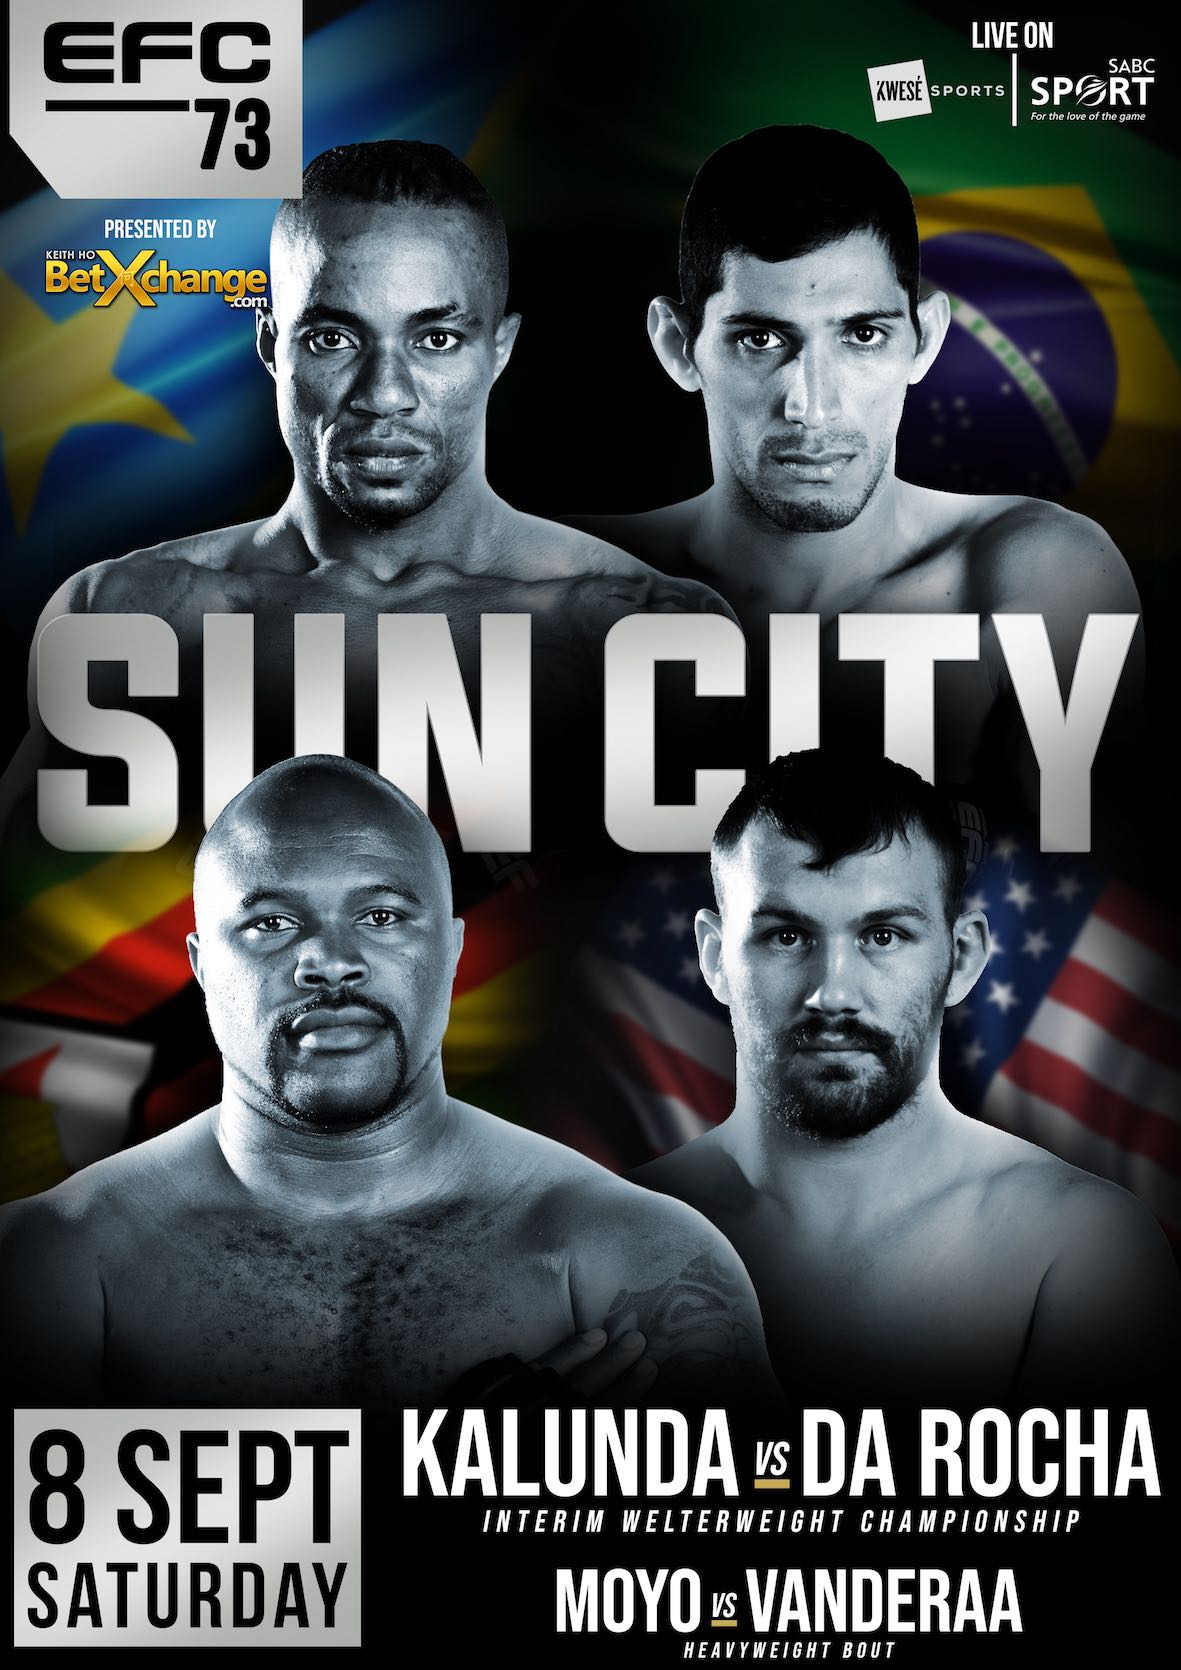 EFC 73 bringing 11 exciting MMA fight to Sun City in September 2018